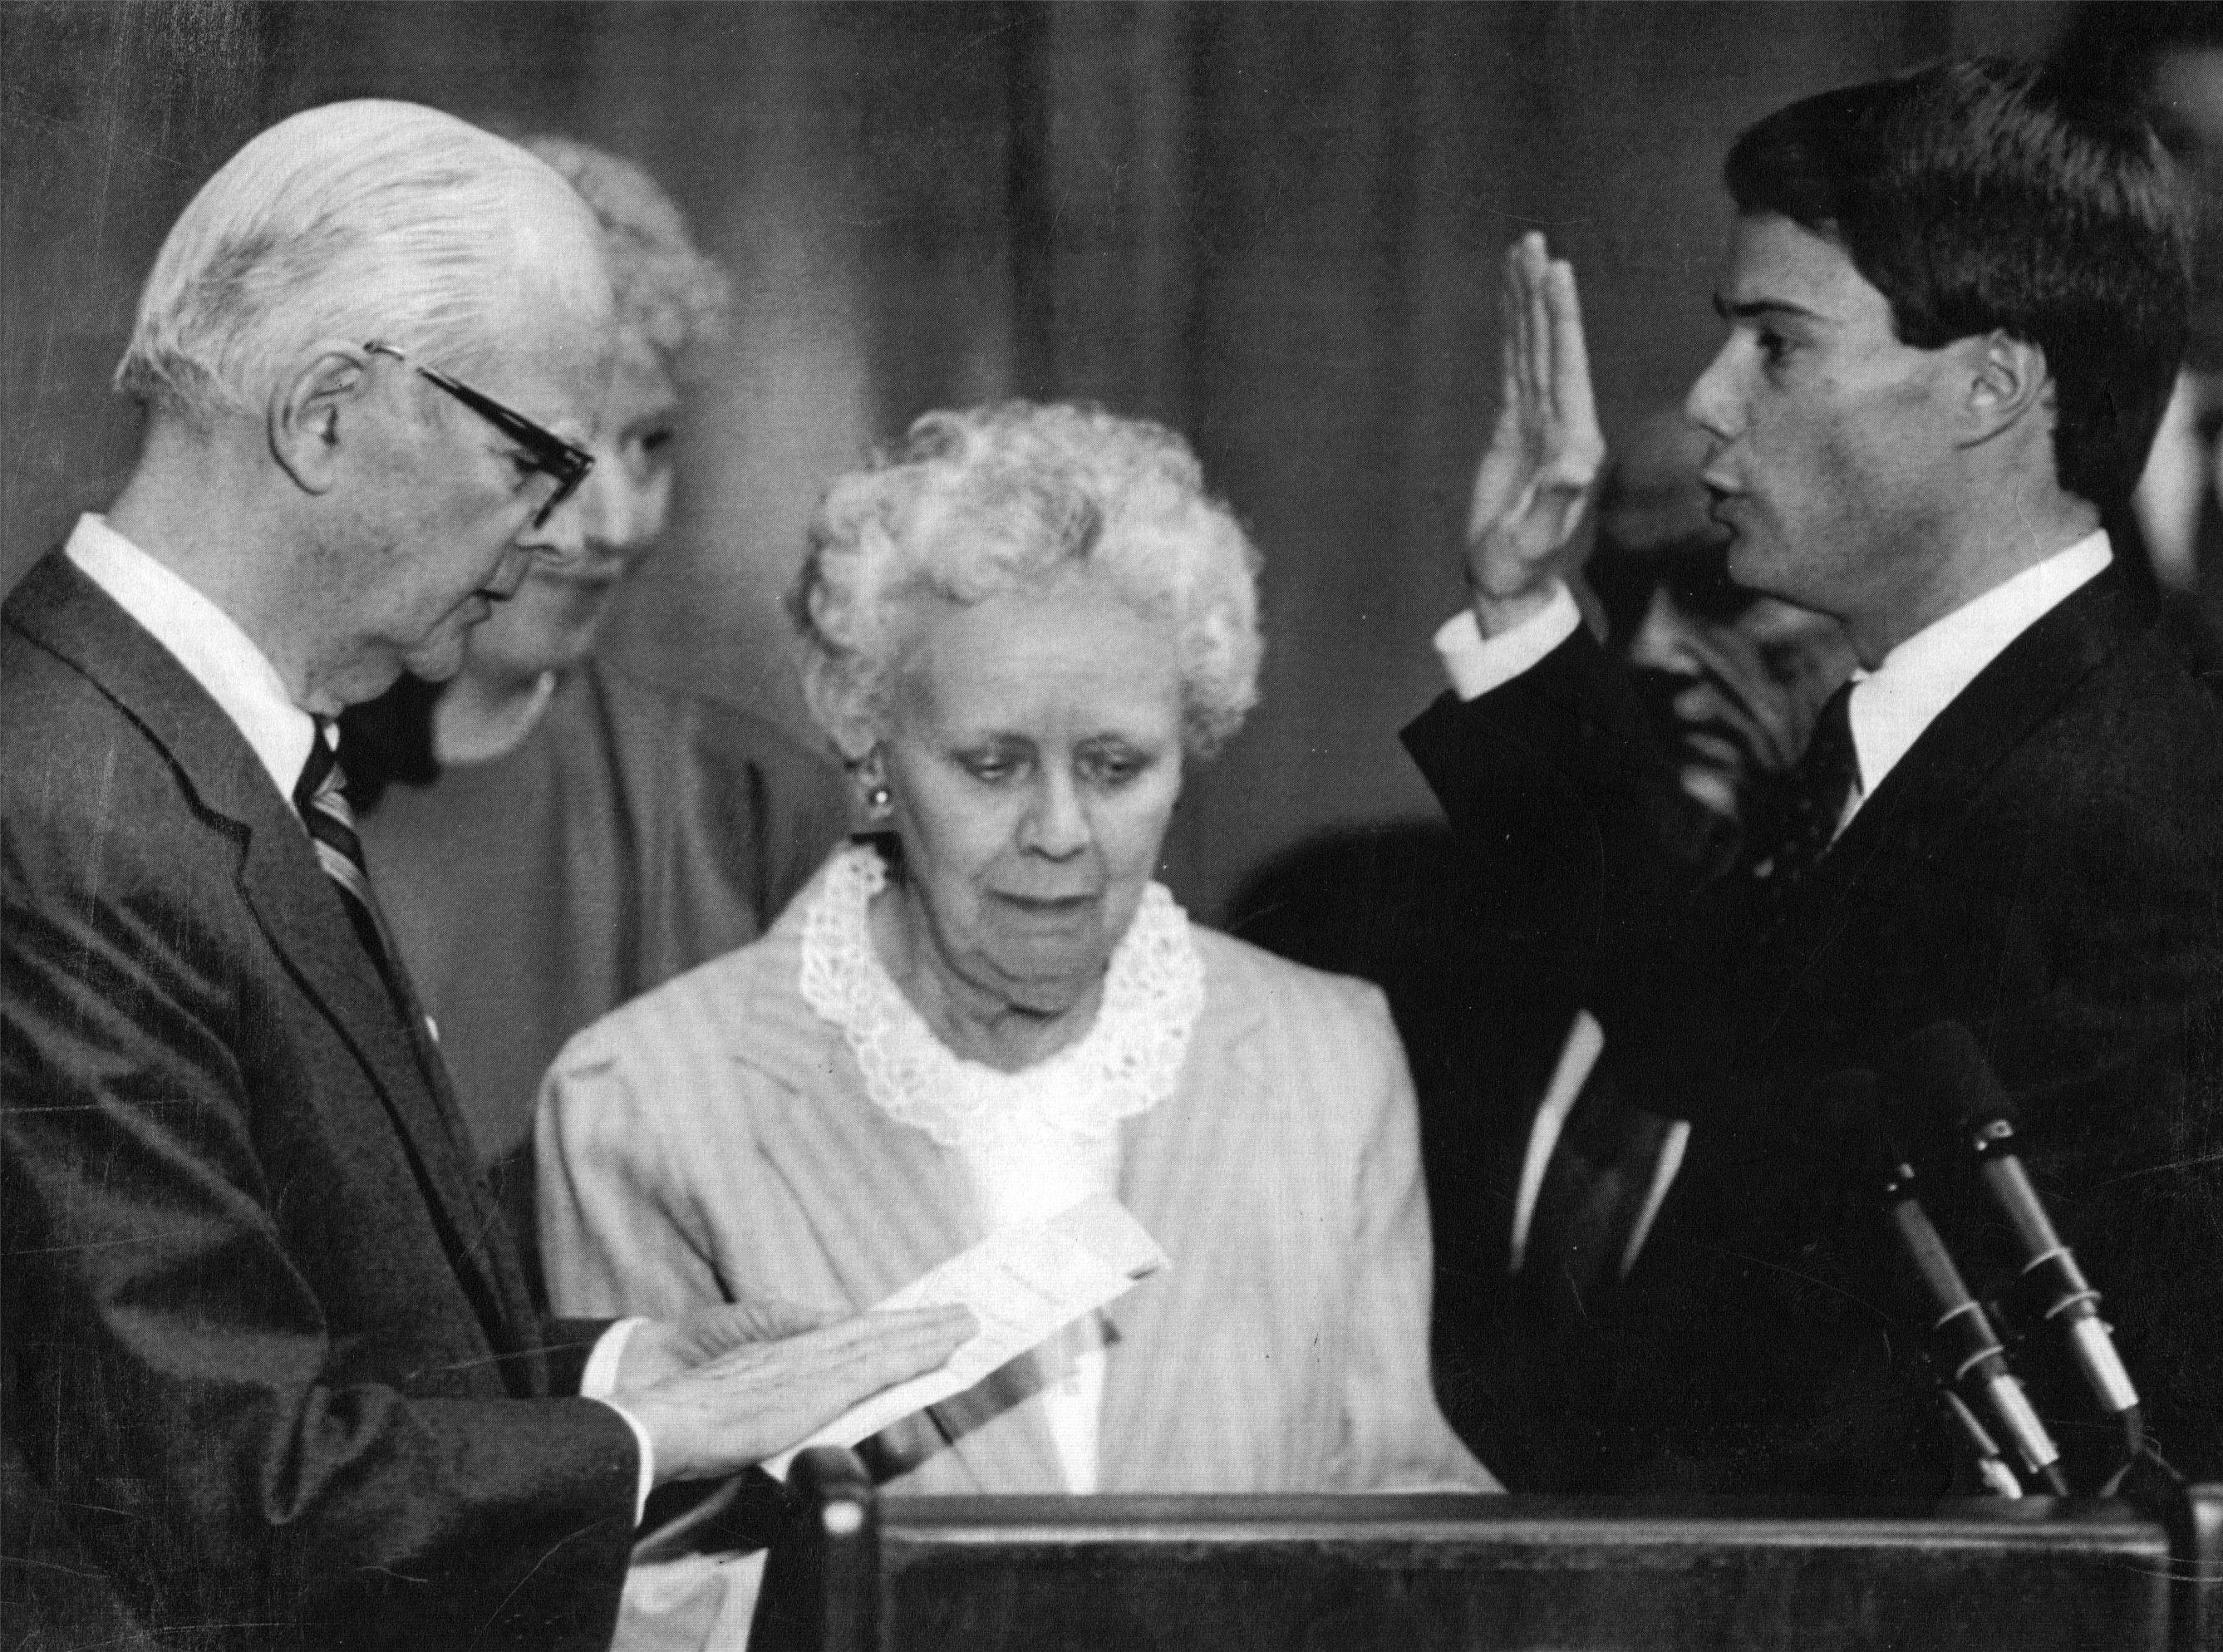 Joe Hogsett, right, takes the oath of office for secretary of state from former Gov. Matthew Welch at the sttehouse in 1989. Hogsett takes over from Evan Bayh.In the middle is Hogsett's mother, Martha.